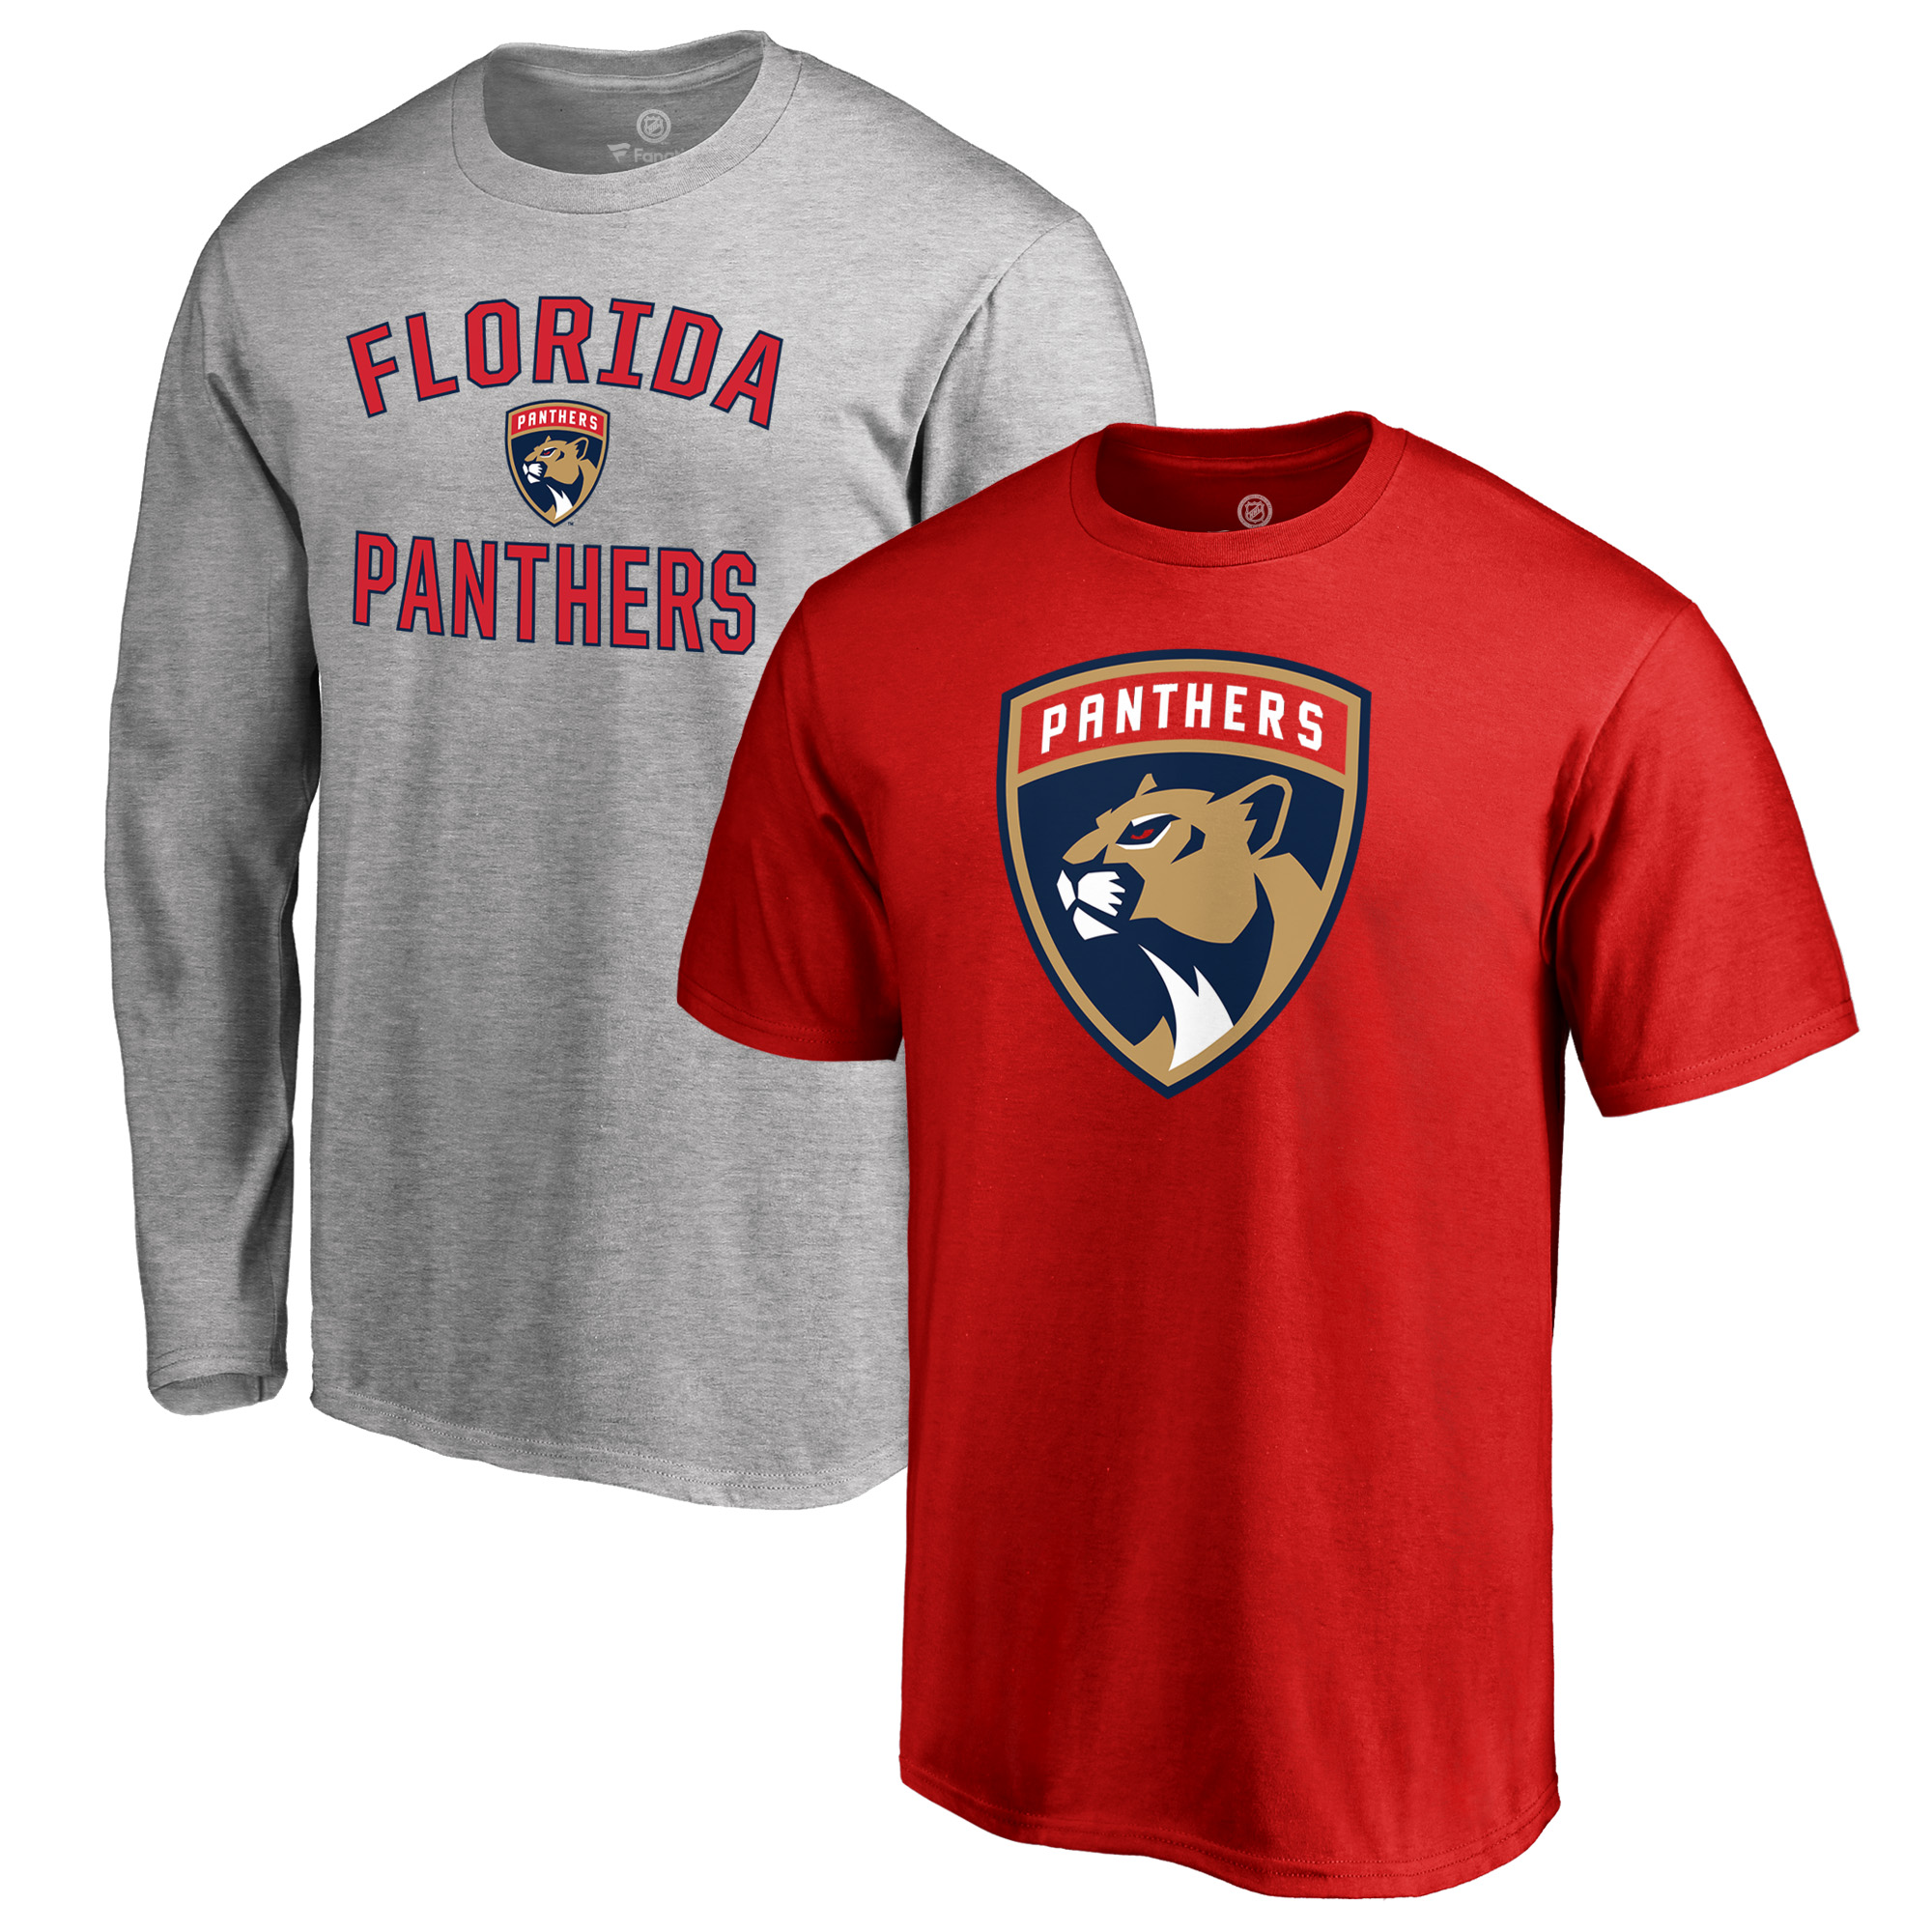 Florida Panthers Fanatics Branded Big & Tall T-Shirt Combo Set - Red/Heathered Gray